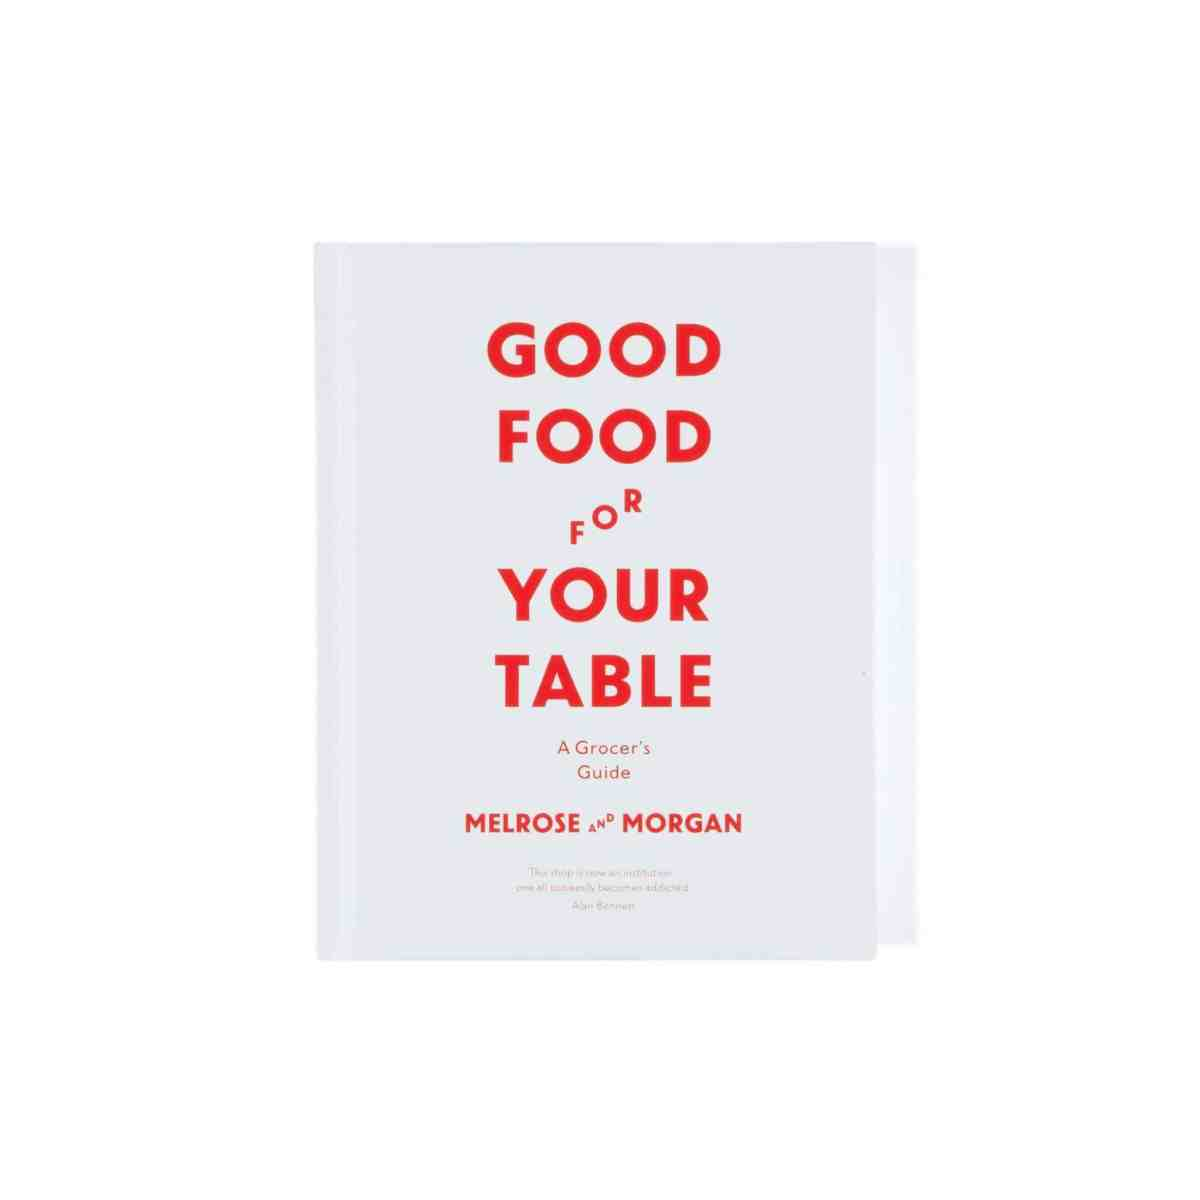 Melrose-morgan-book-good-food-for-your-table-002